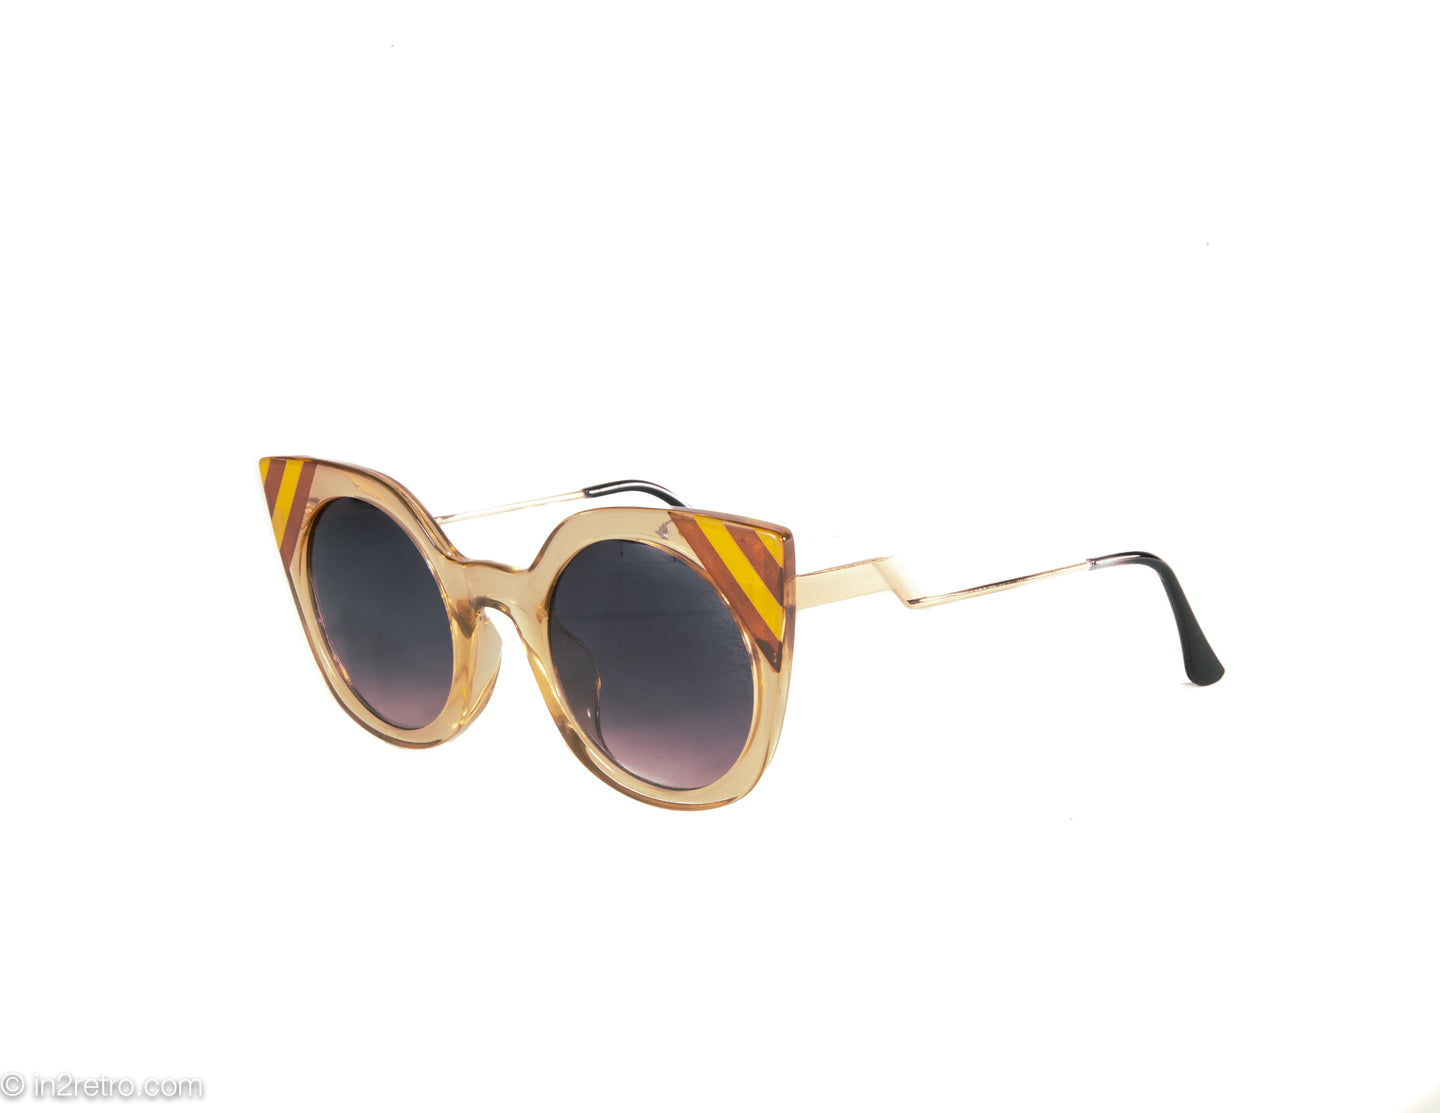 VINTAGE CAT EYE SUNGLASSES WITH TAN STRIPED TEMPLES | GOLD METAL ARMS | CLASSIC RETRO